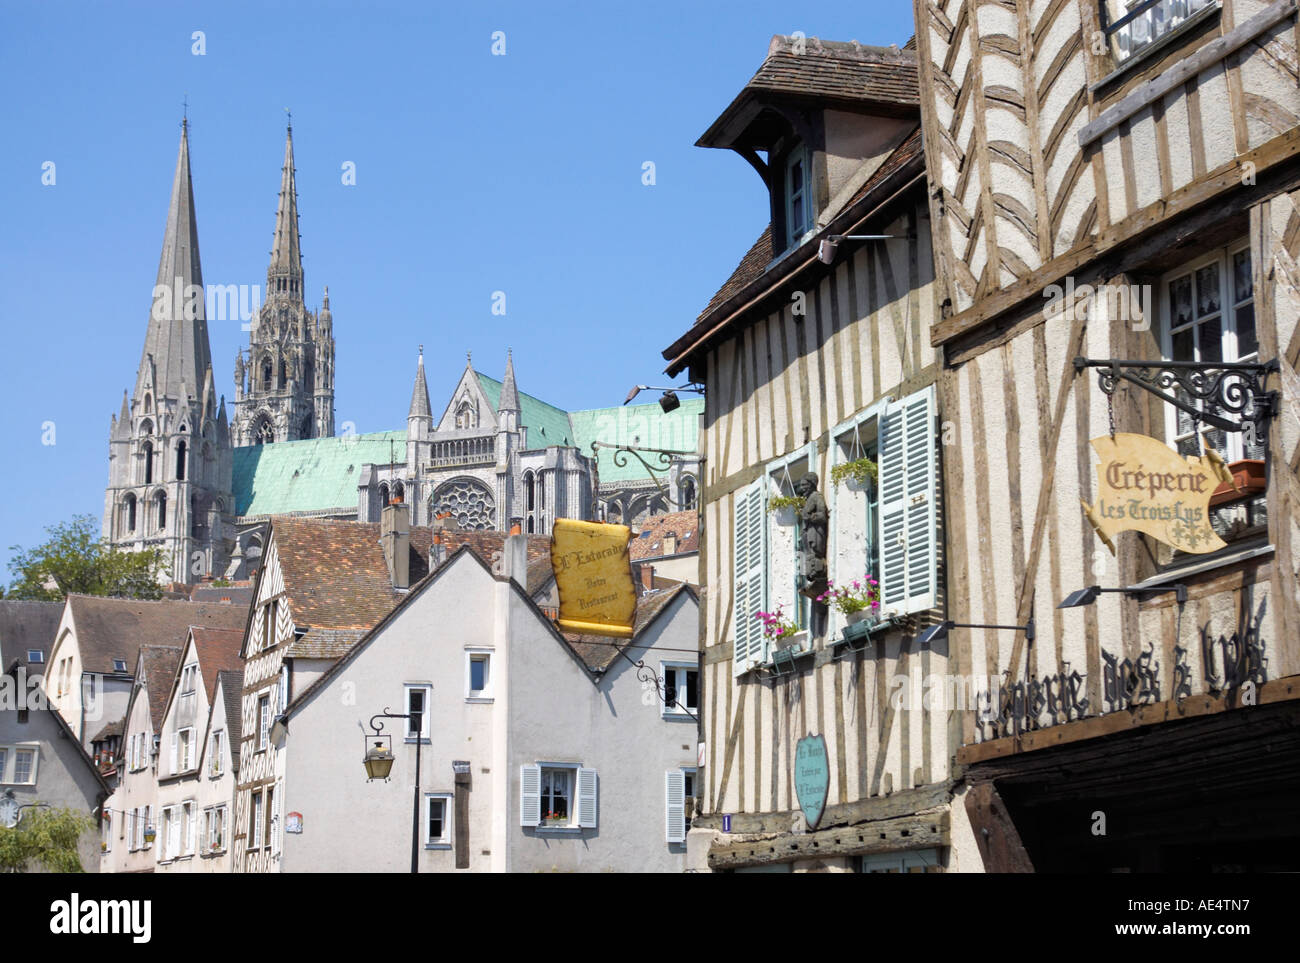 Cathedrale Notre Dame de Chartres the Cathedral of Our Lady of Chartres France wood framed buildings on Rue de Bourg - Stock Image